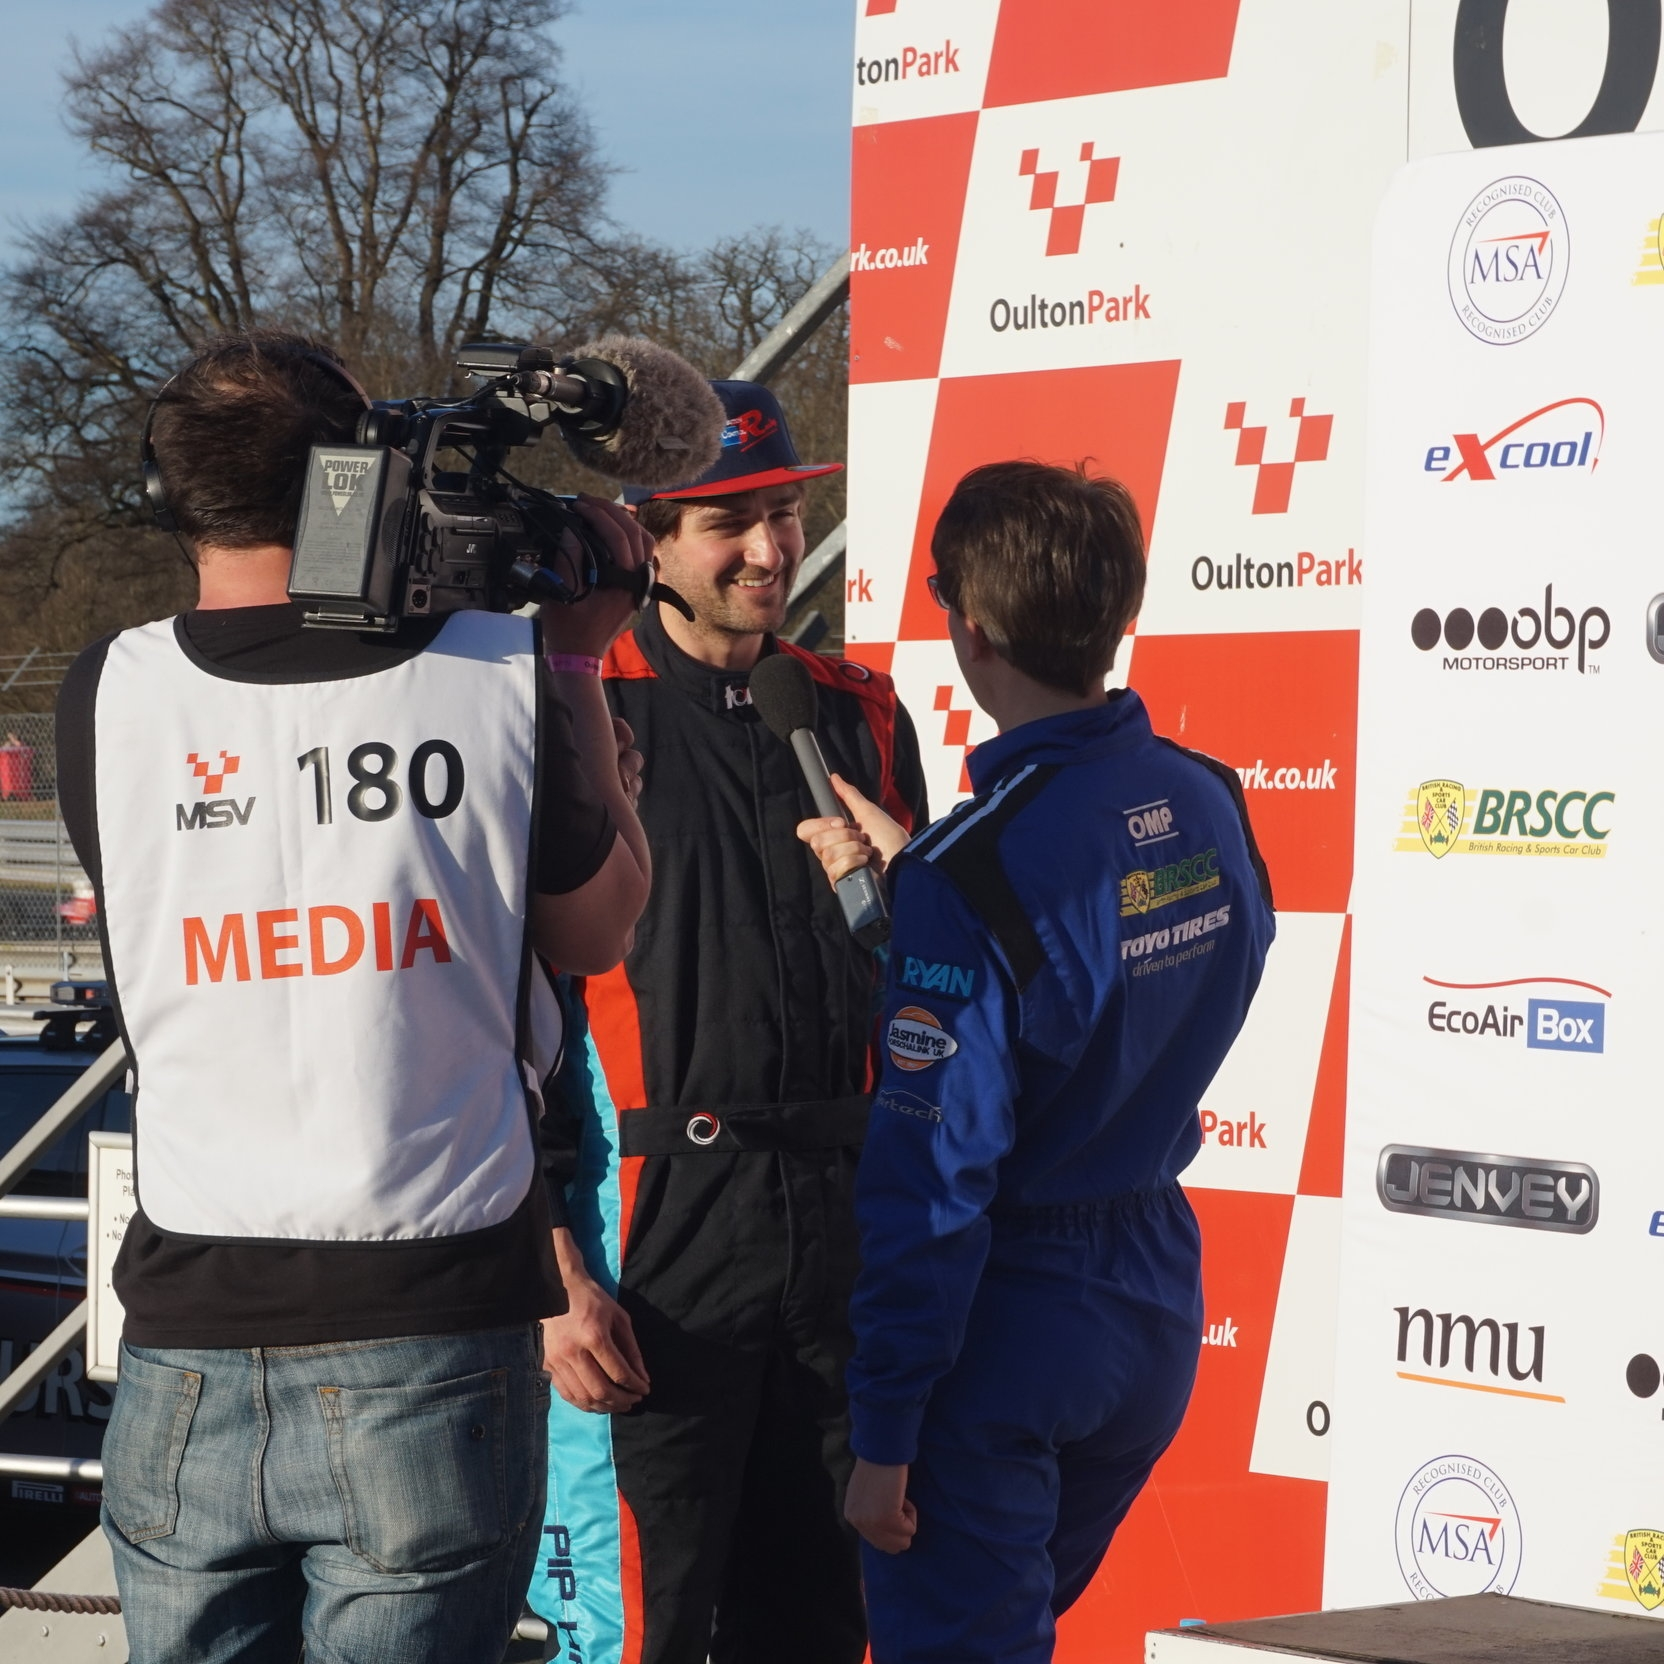 EQ-pip being interviewed-oulton.JPG